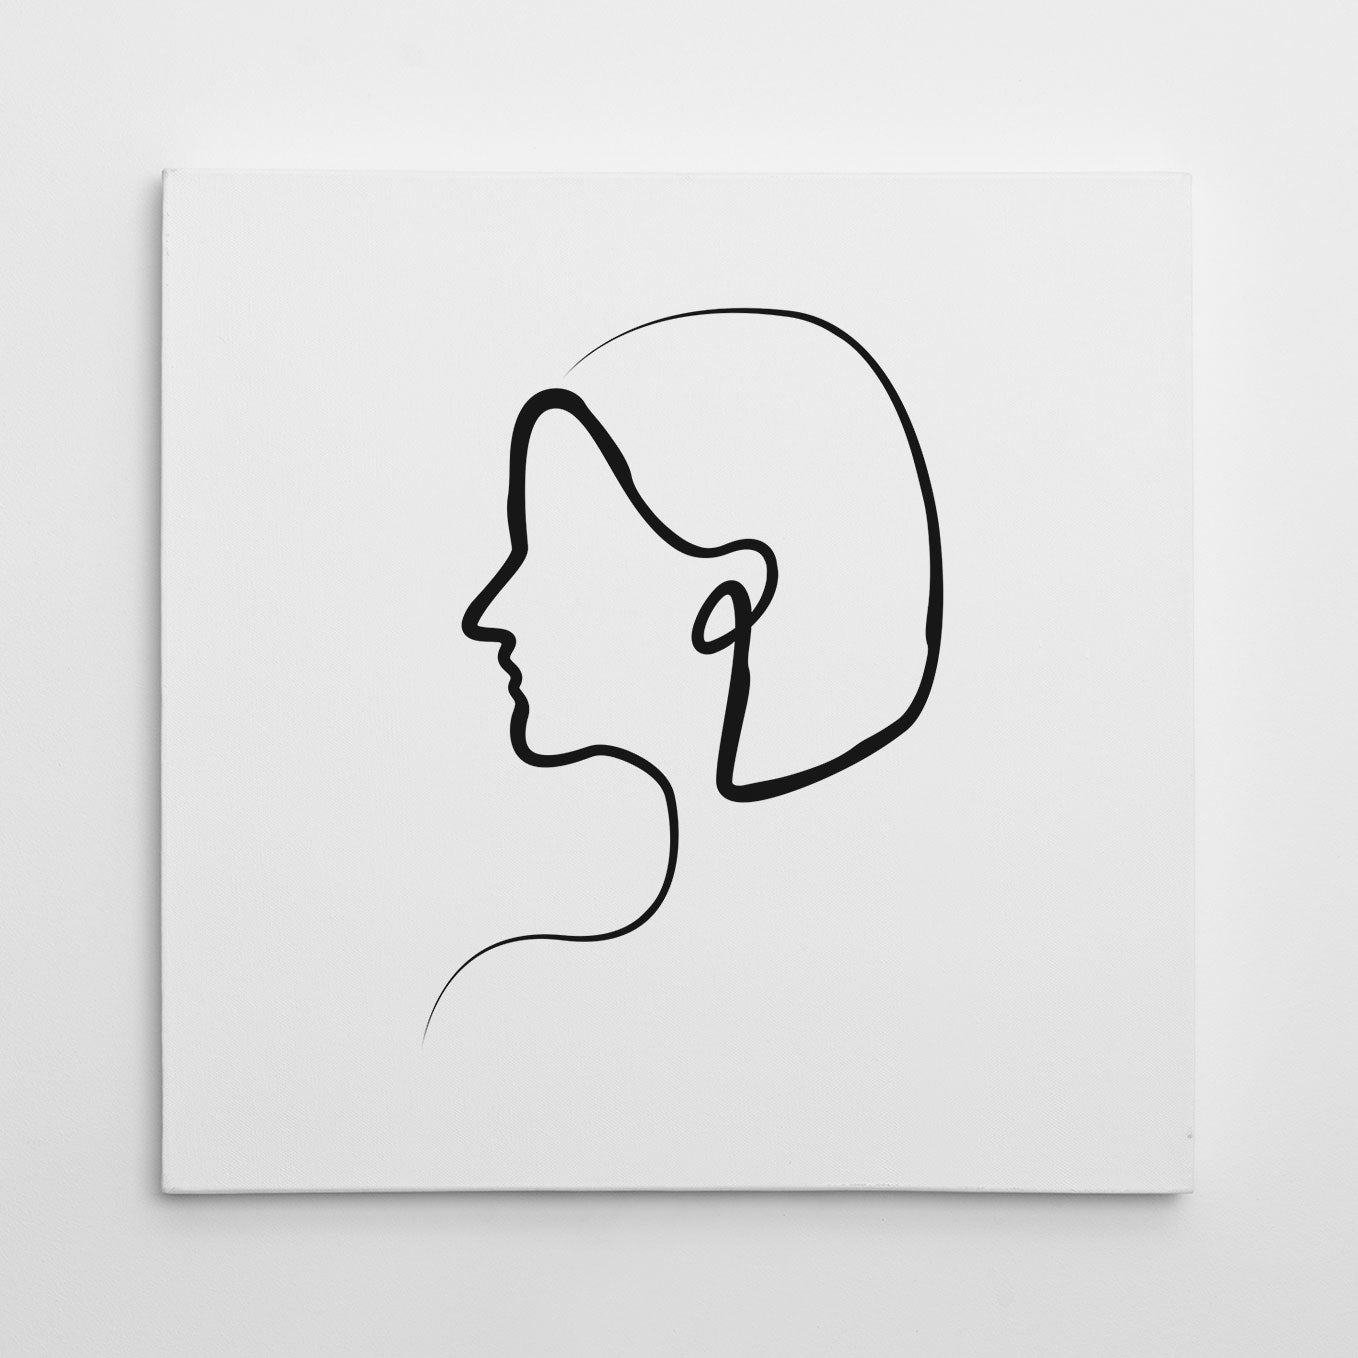 Line art canvas print with a woman's profile